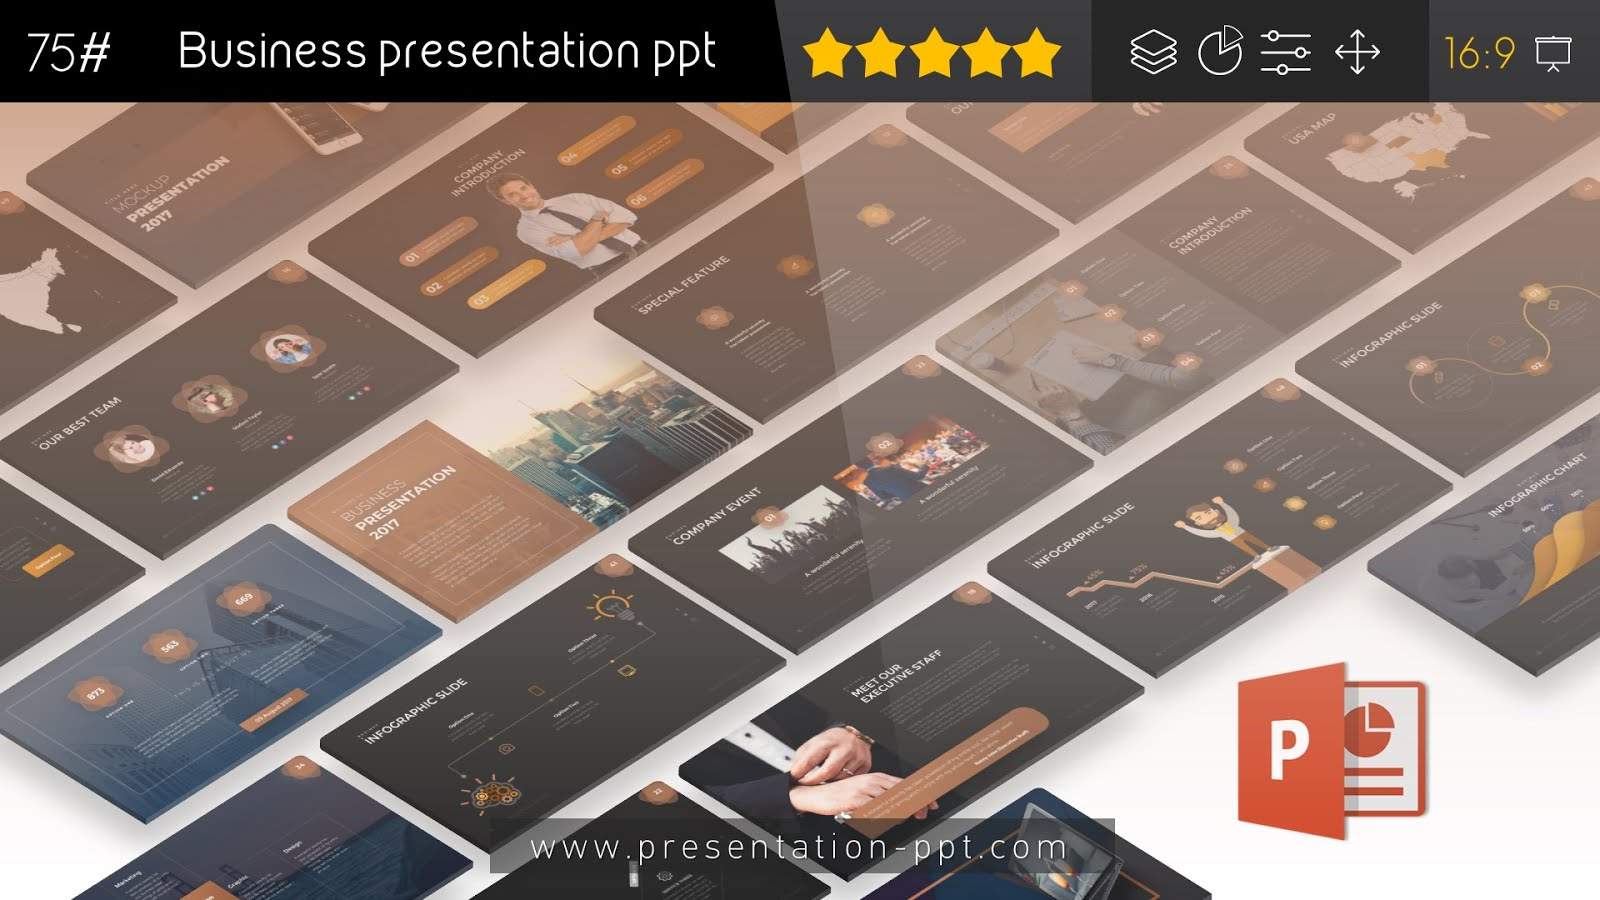 Business presentation powerpoint template free